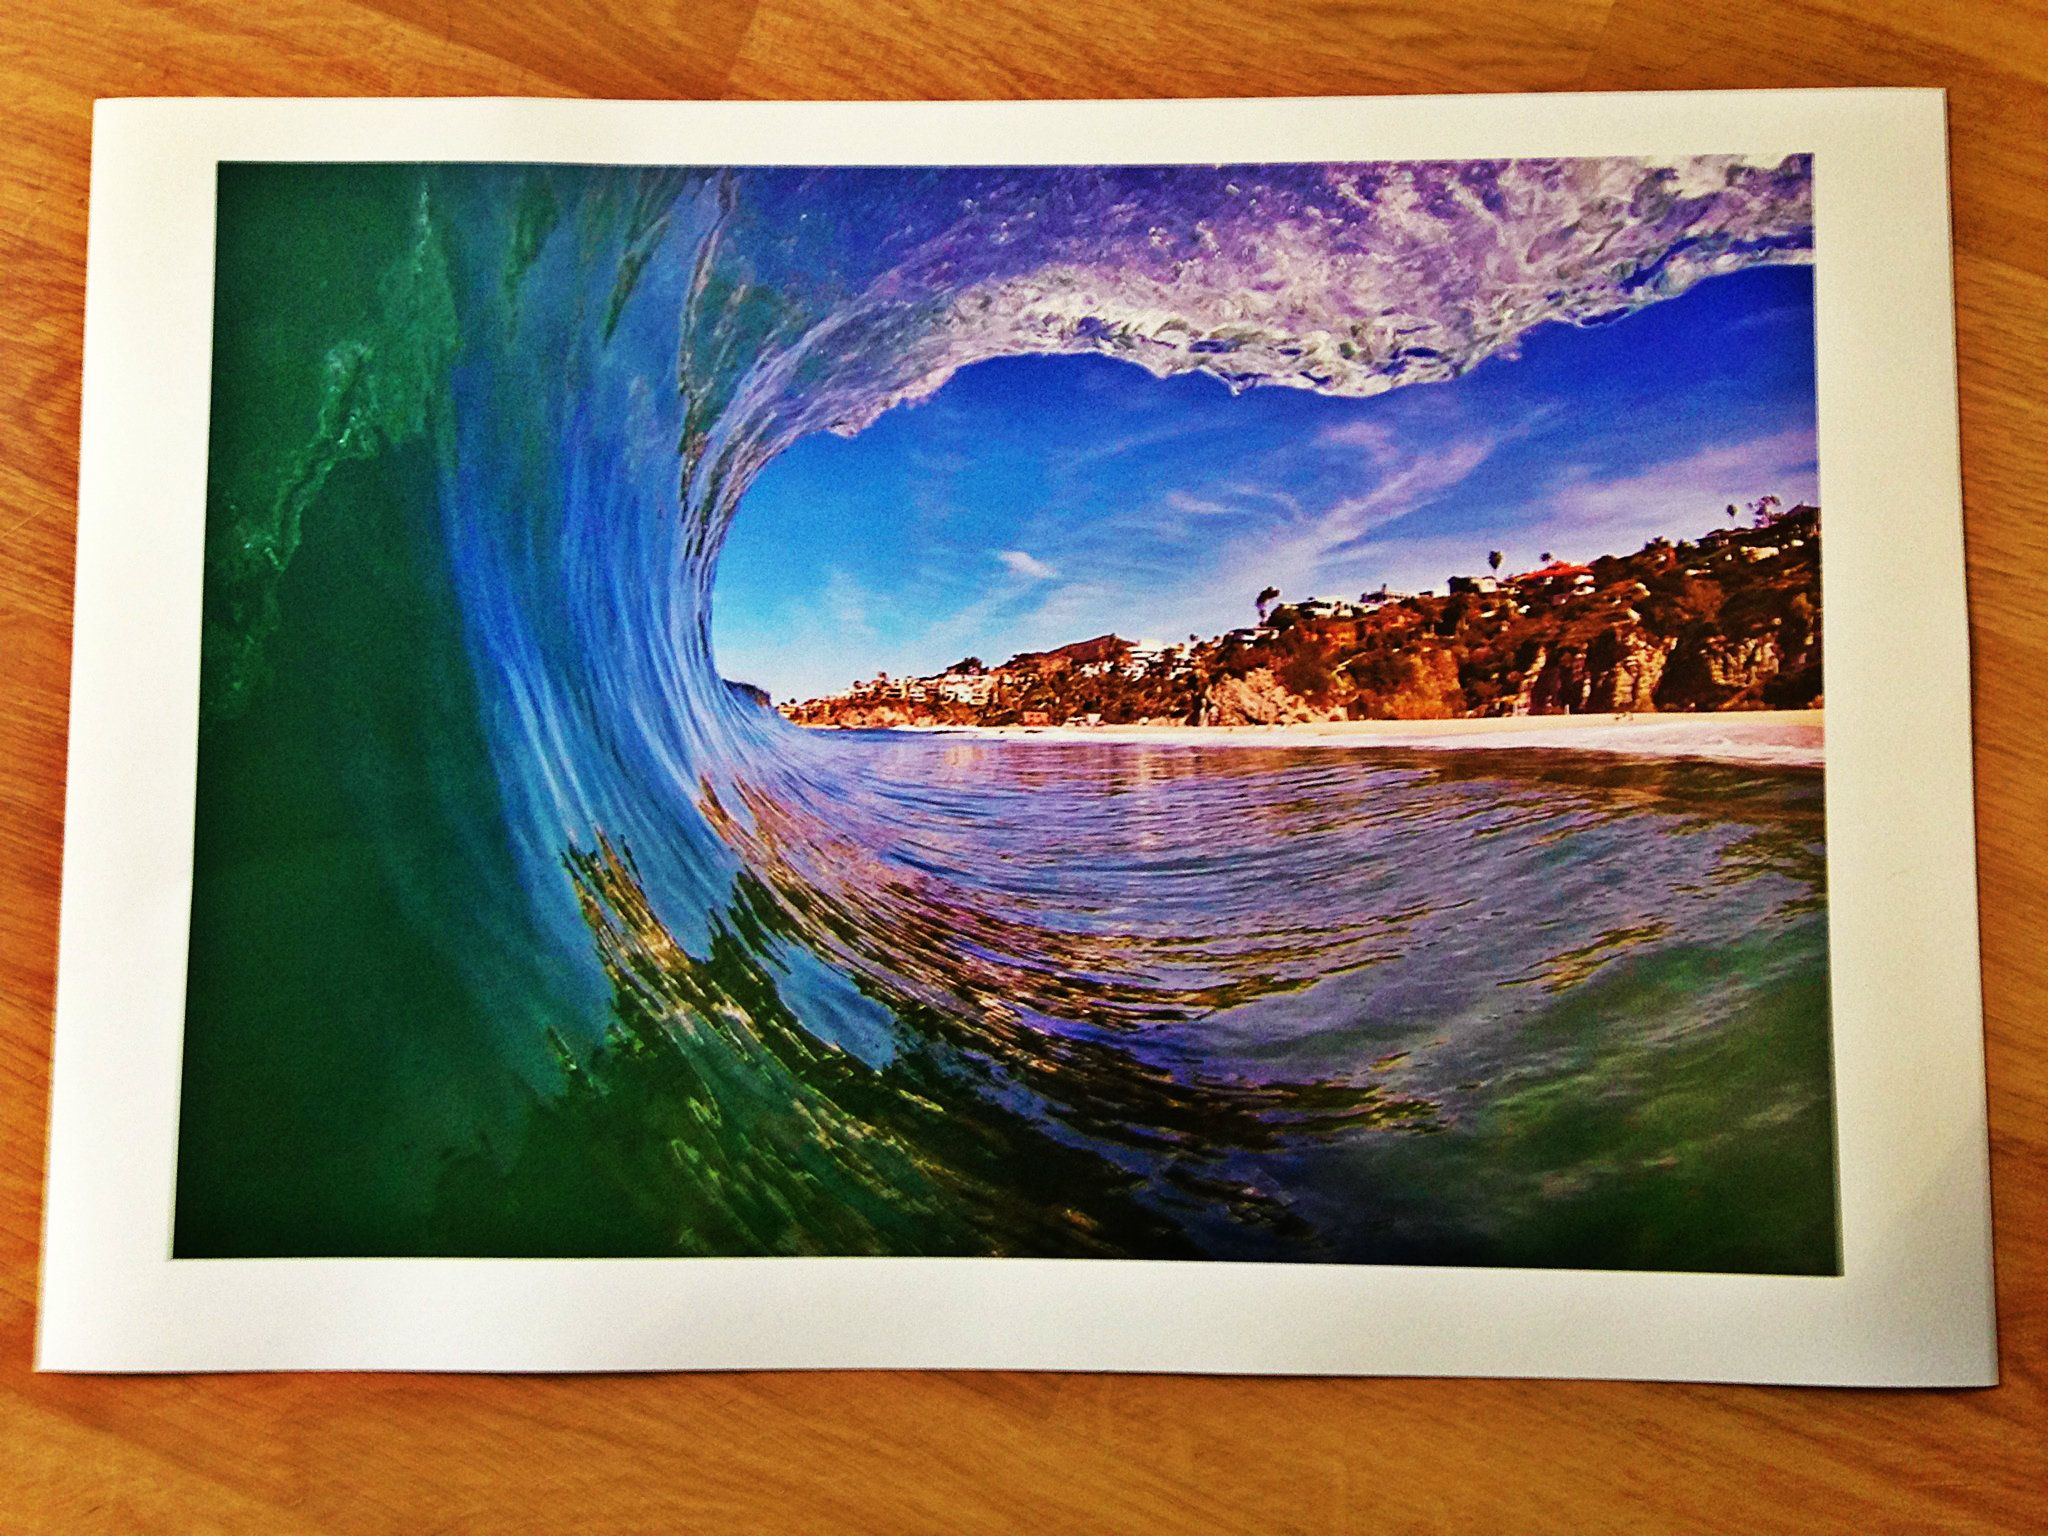 "Our Ocean Art images are printed on premium quality paper using one of the best spray printers on the market.  They look really nice framed or even just hung on a wall solo.  Coastal Playground 50/50® Ocean Art is a great way to spruce up a living room, dorm, or even a Garage aka ""Mancave"". Live what you love and protect where you play!"